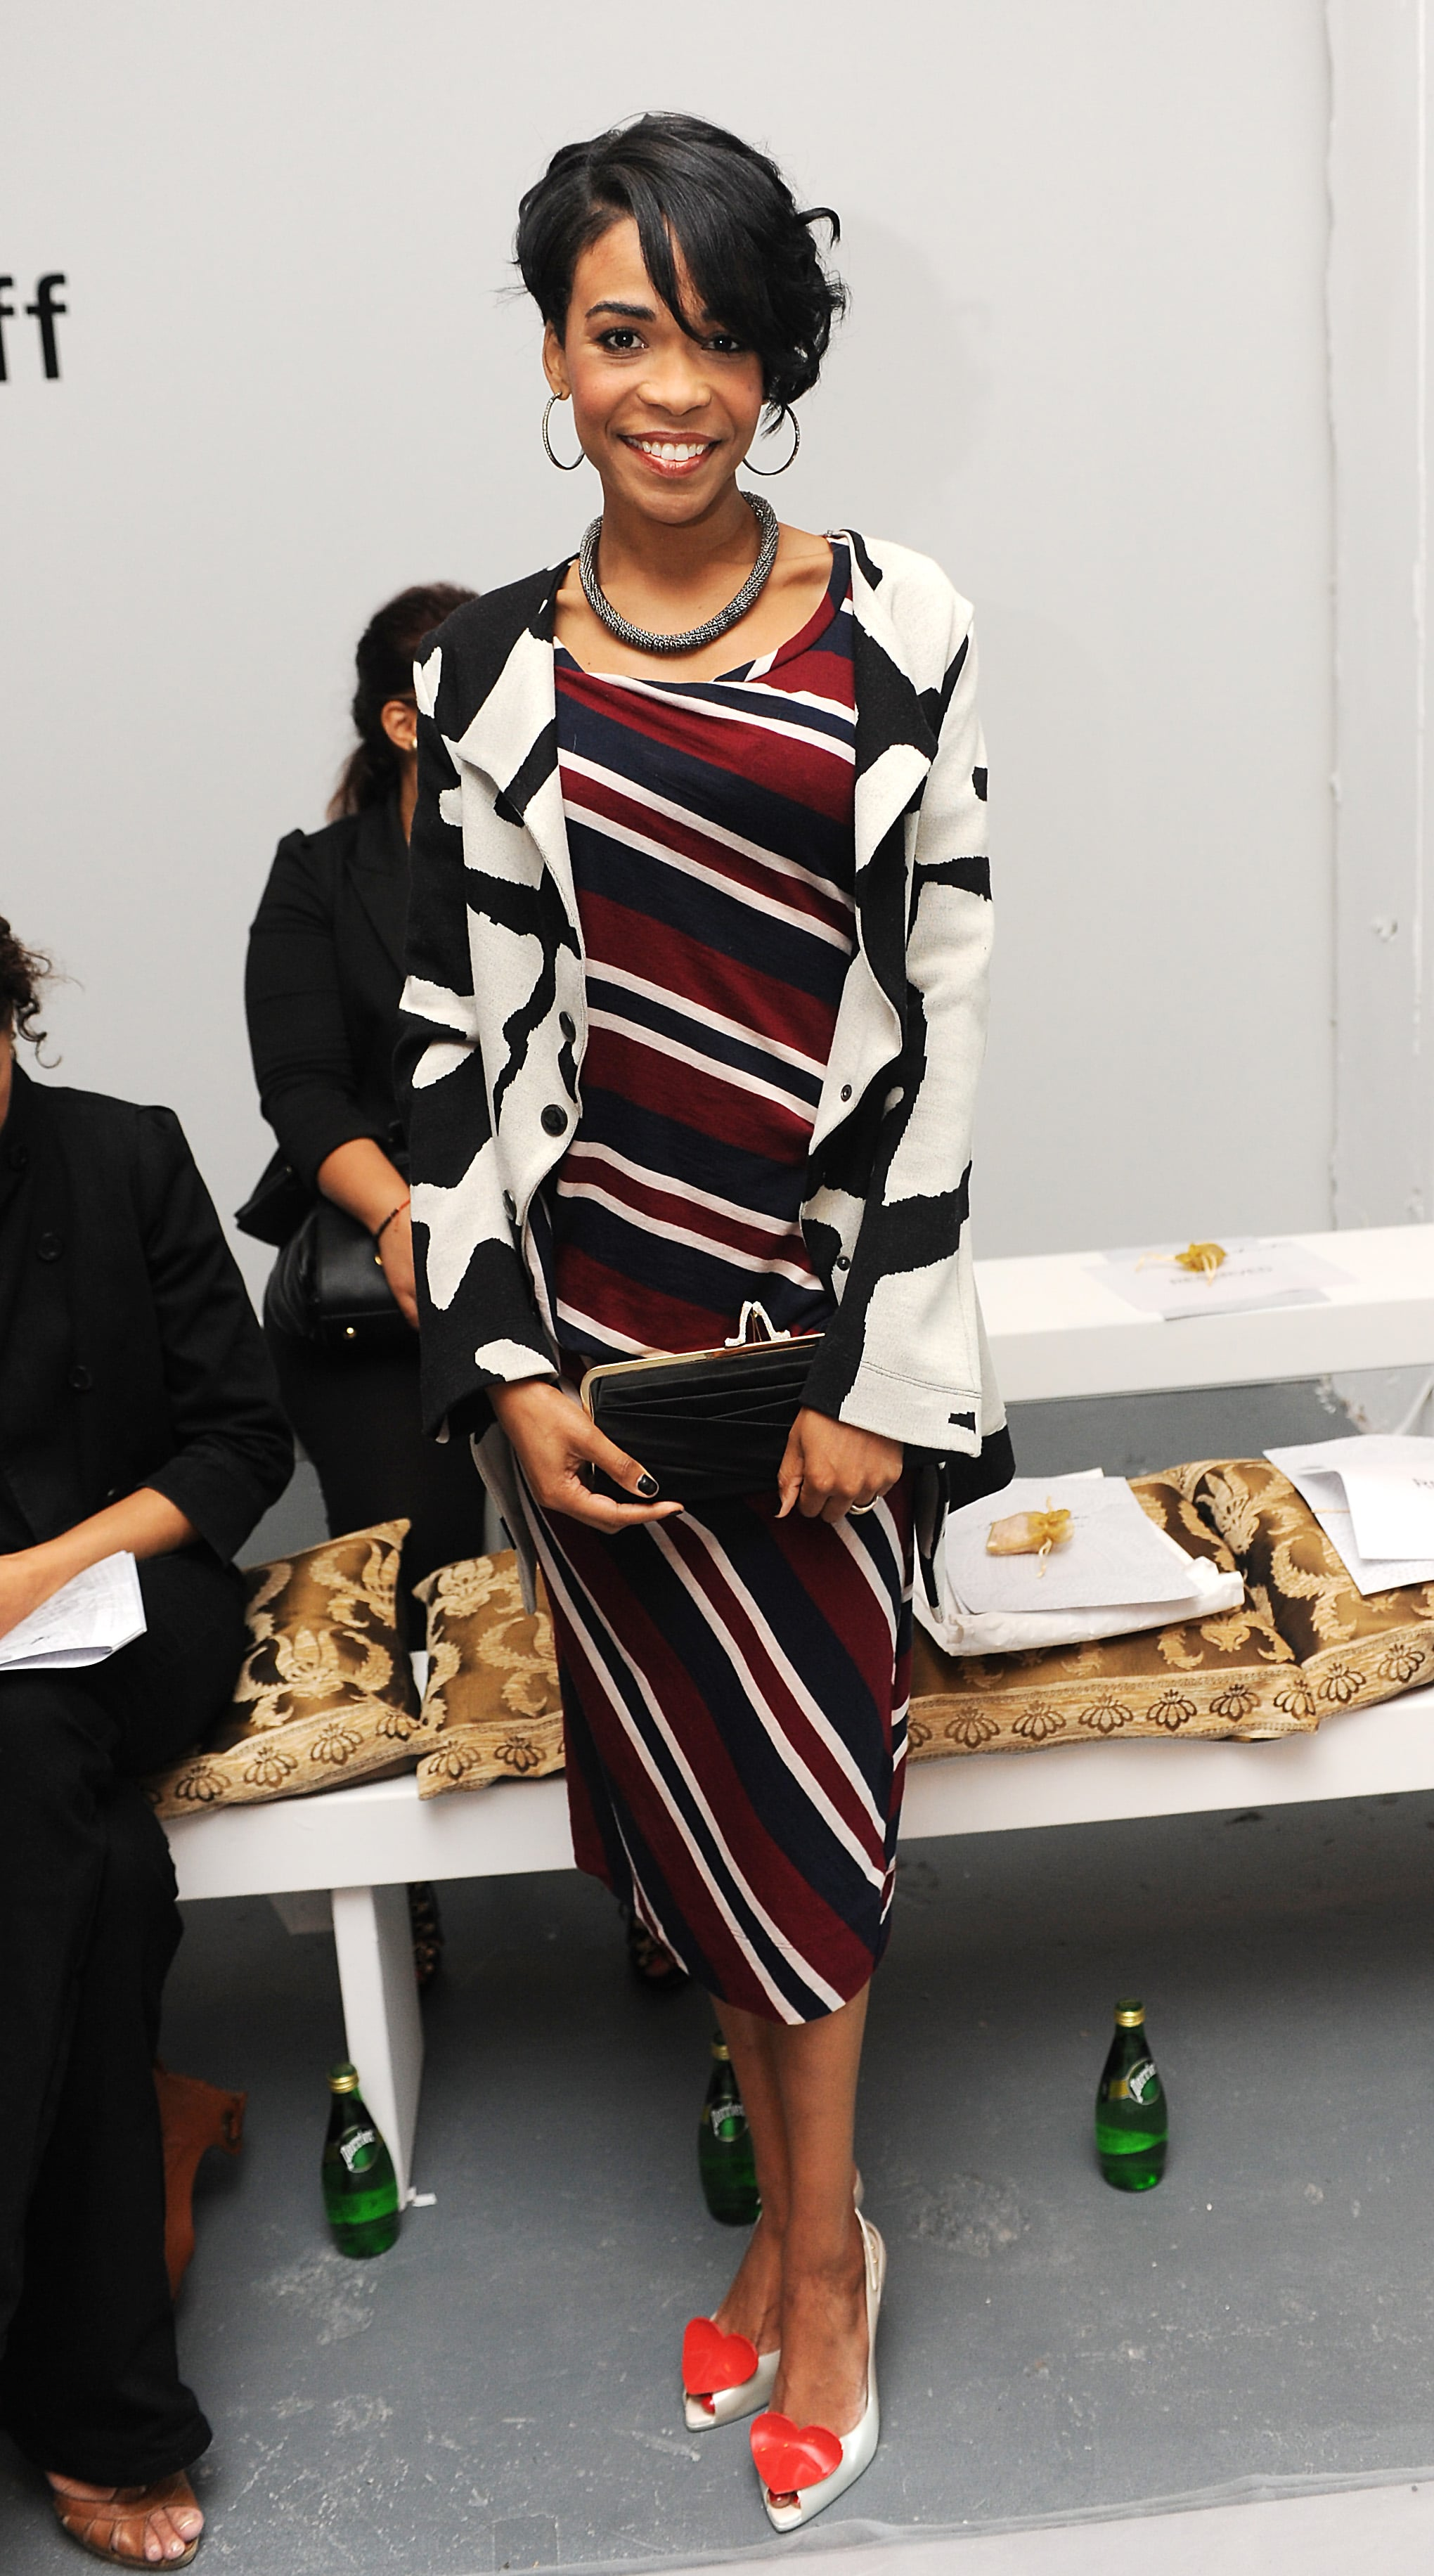 Photos From The Front Rows At London Fashion Week Shows ...